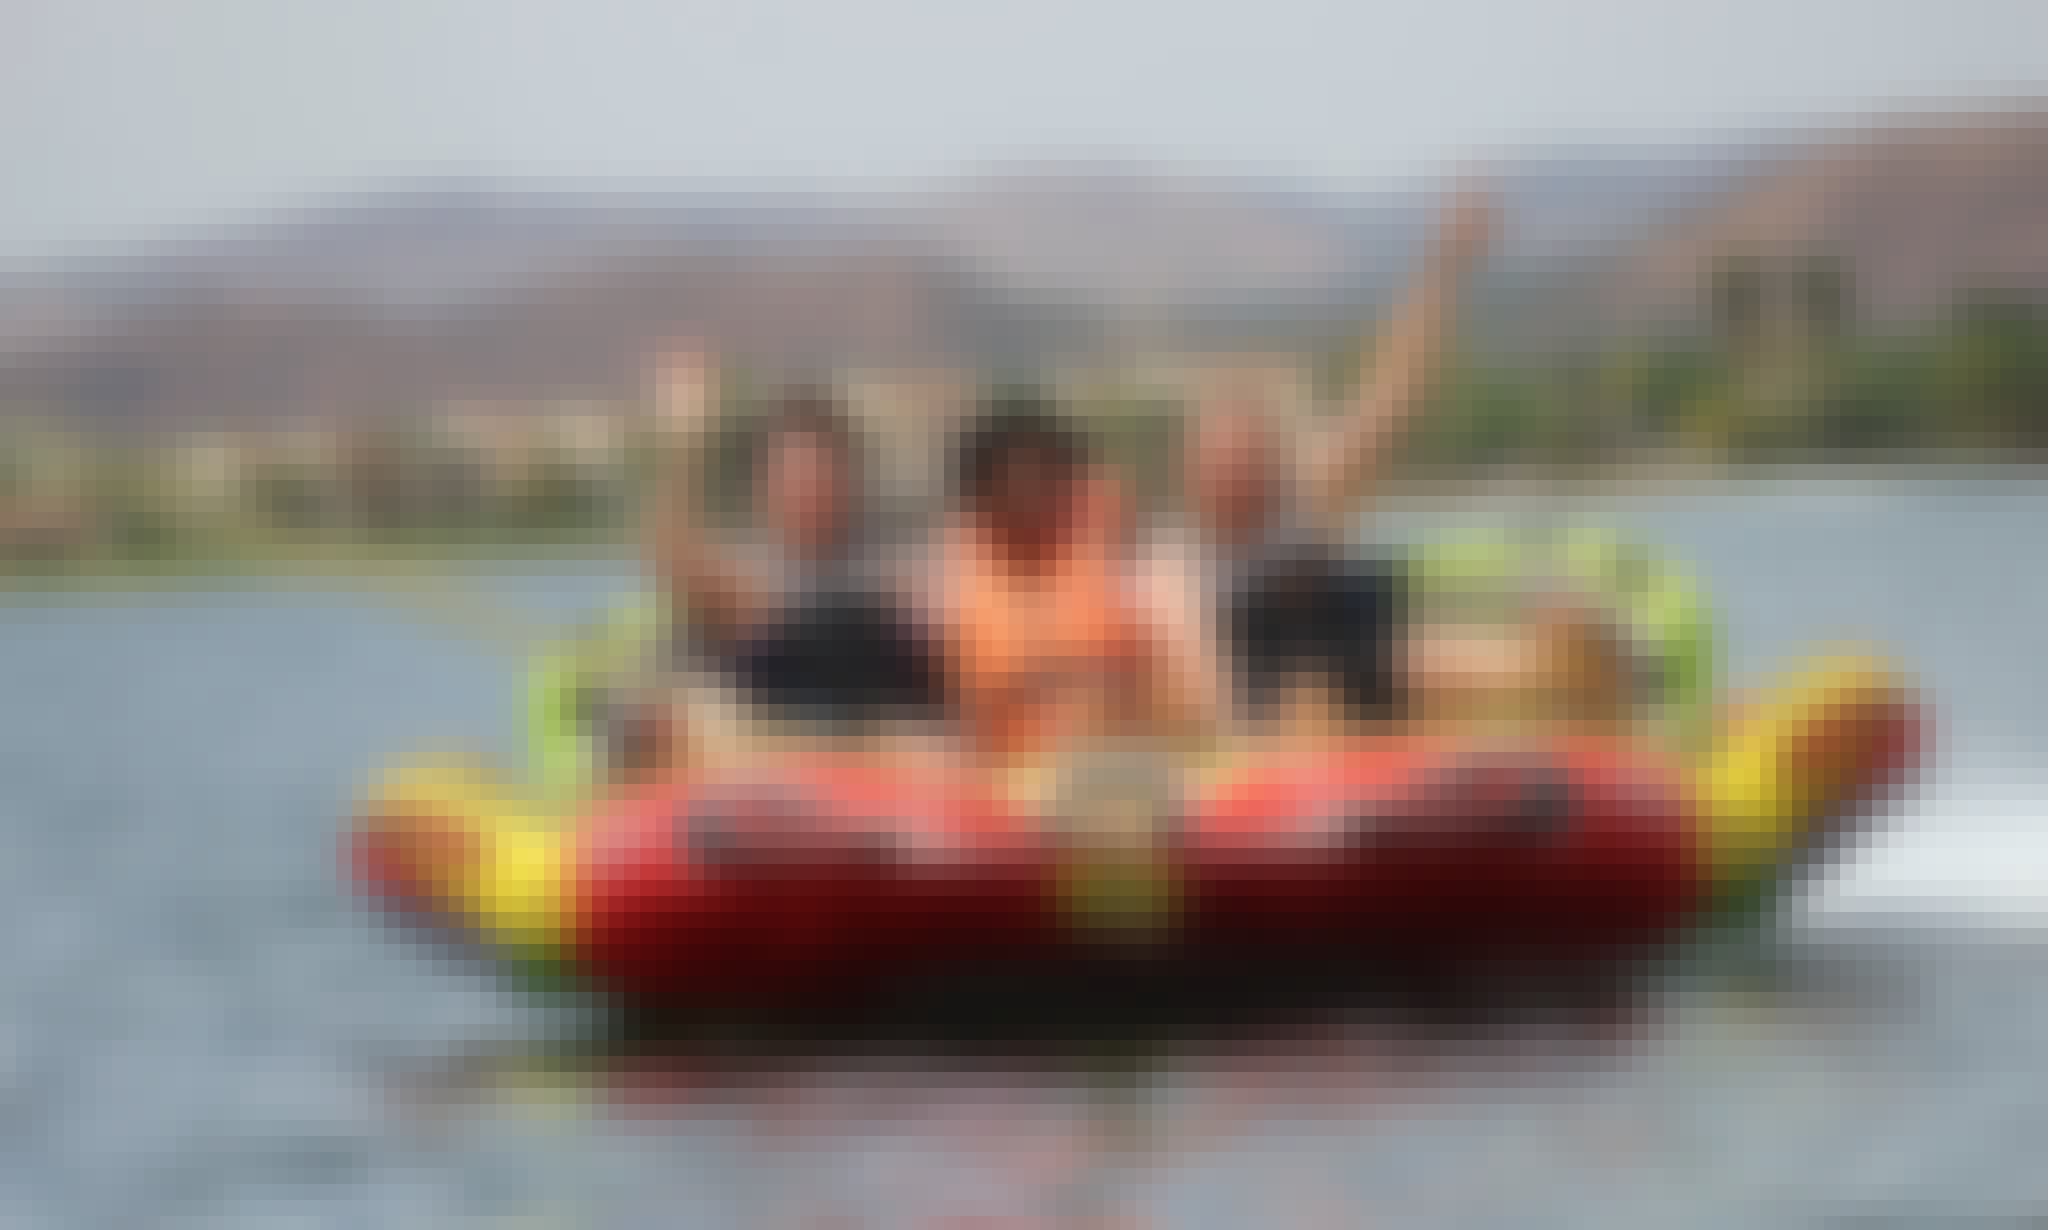 Feel the thrill of water by tubing in Hartbeespoort, South Africa